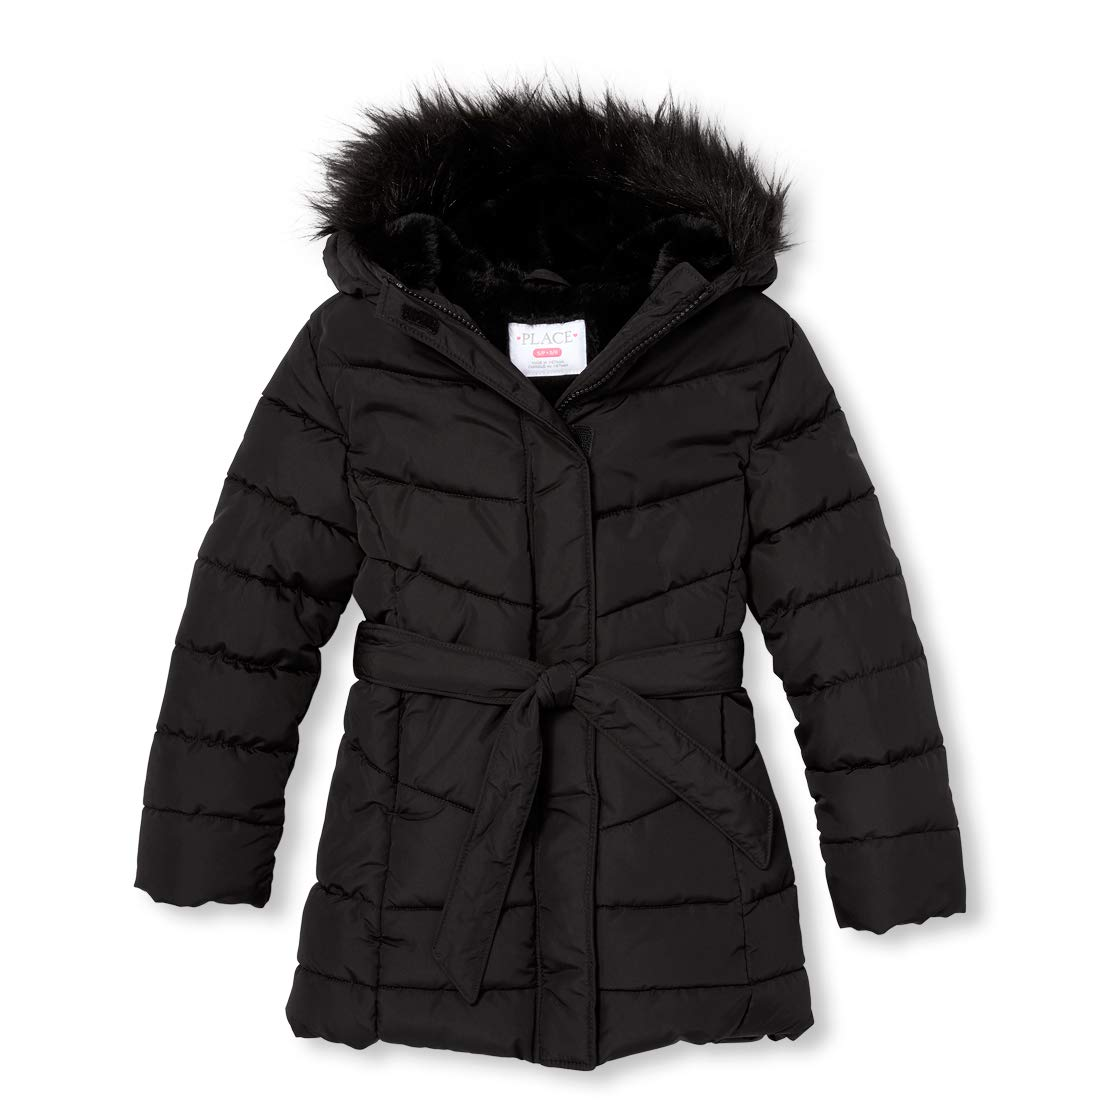 The Children's Place Big Girls Coats